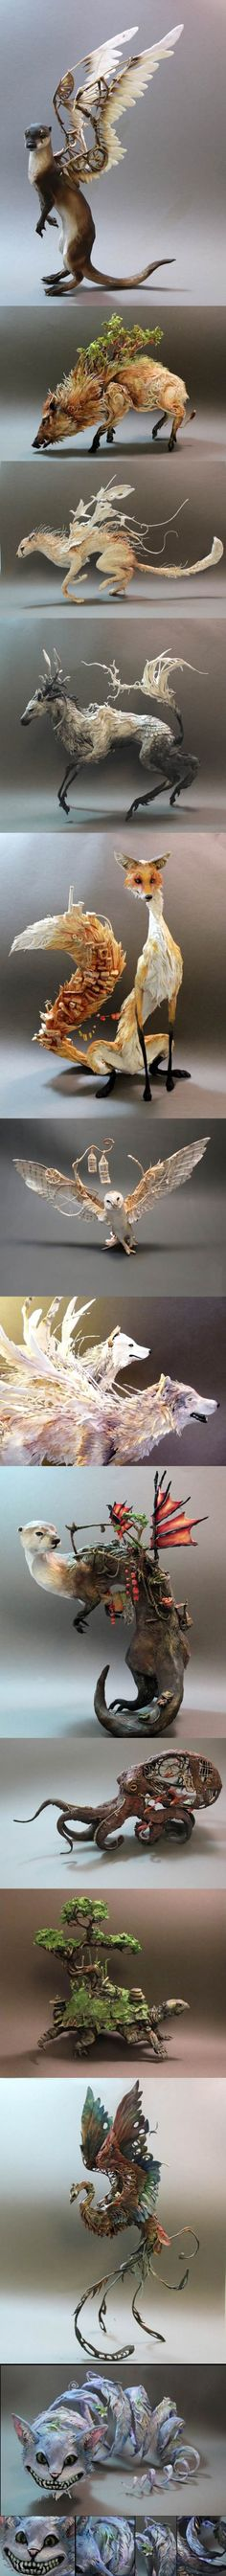 Phantasmagorical Animals by Ellen Jewett. .